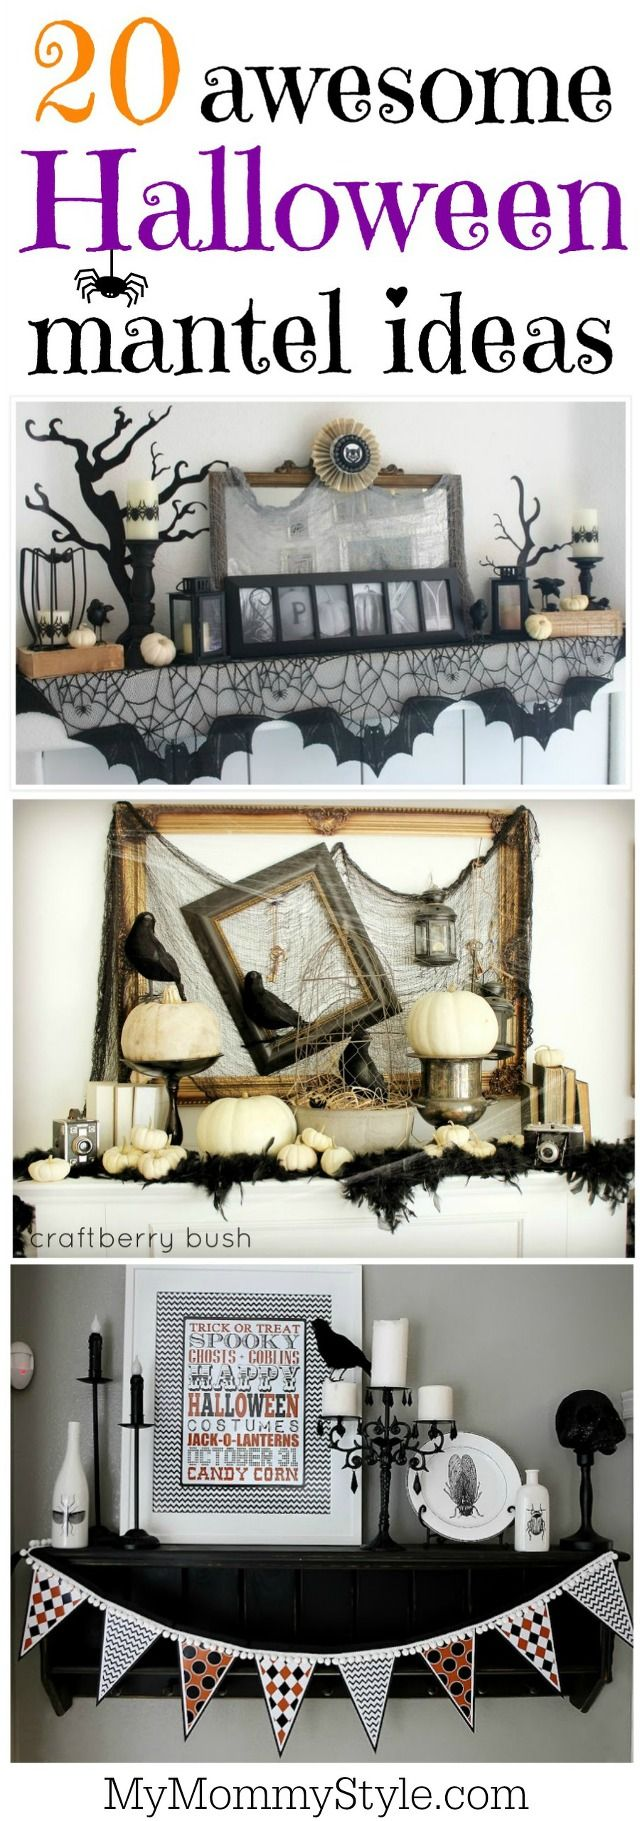 20-awesome-hallween-mantel-ideas